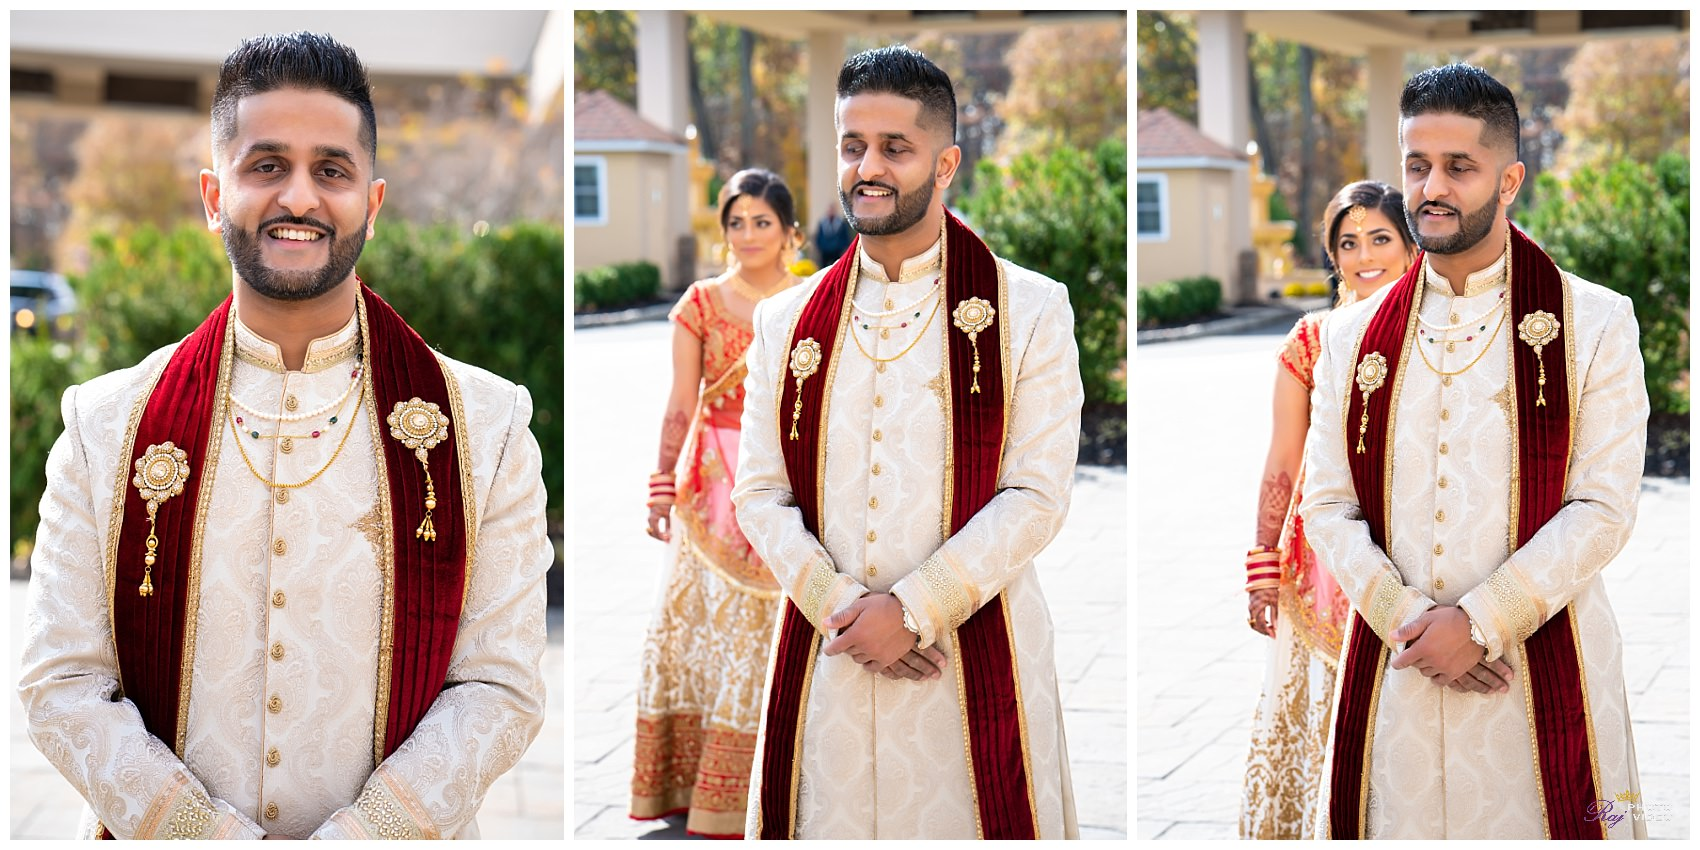 Marigold Somerset Nj Hindu Wedding Roma Ashish